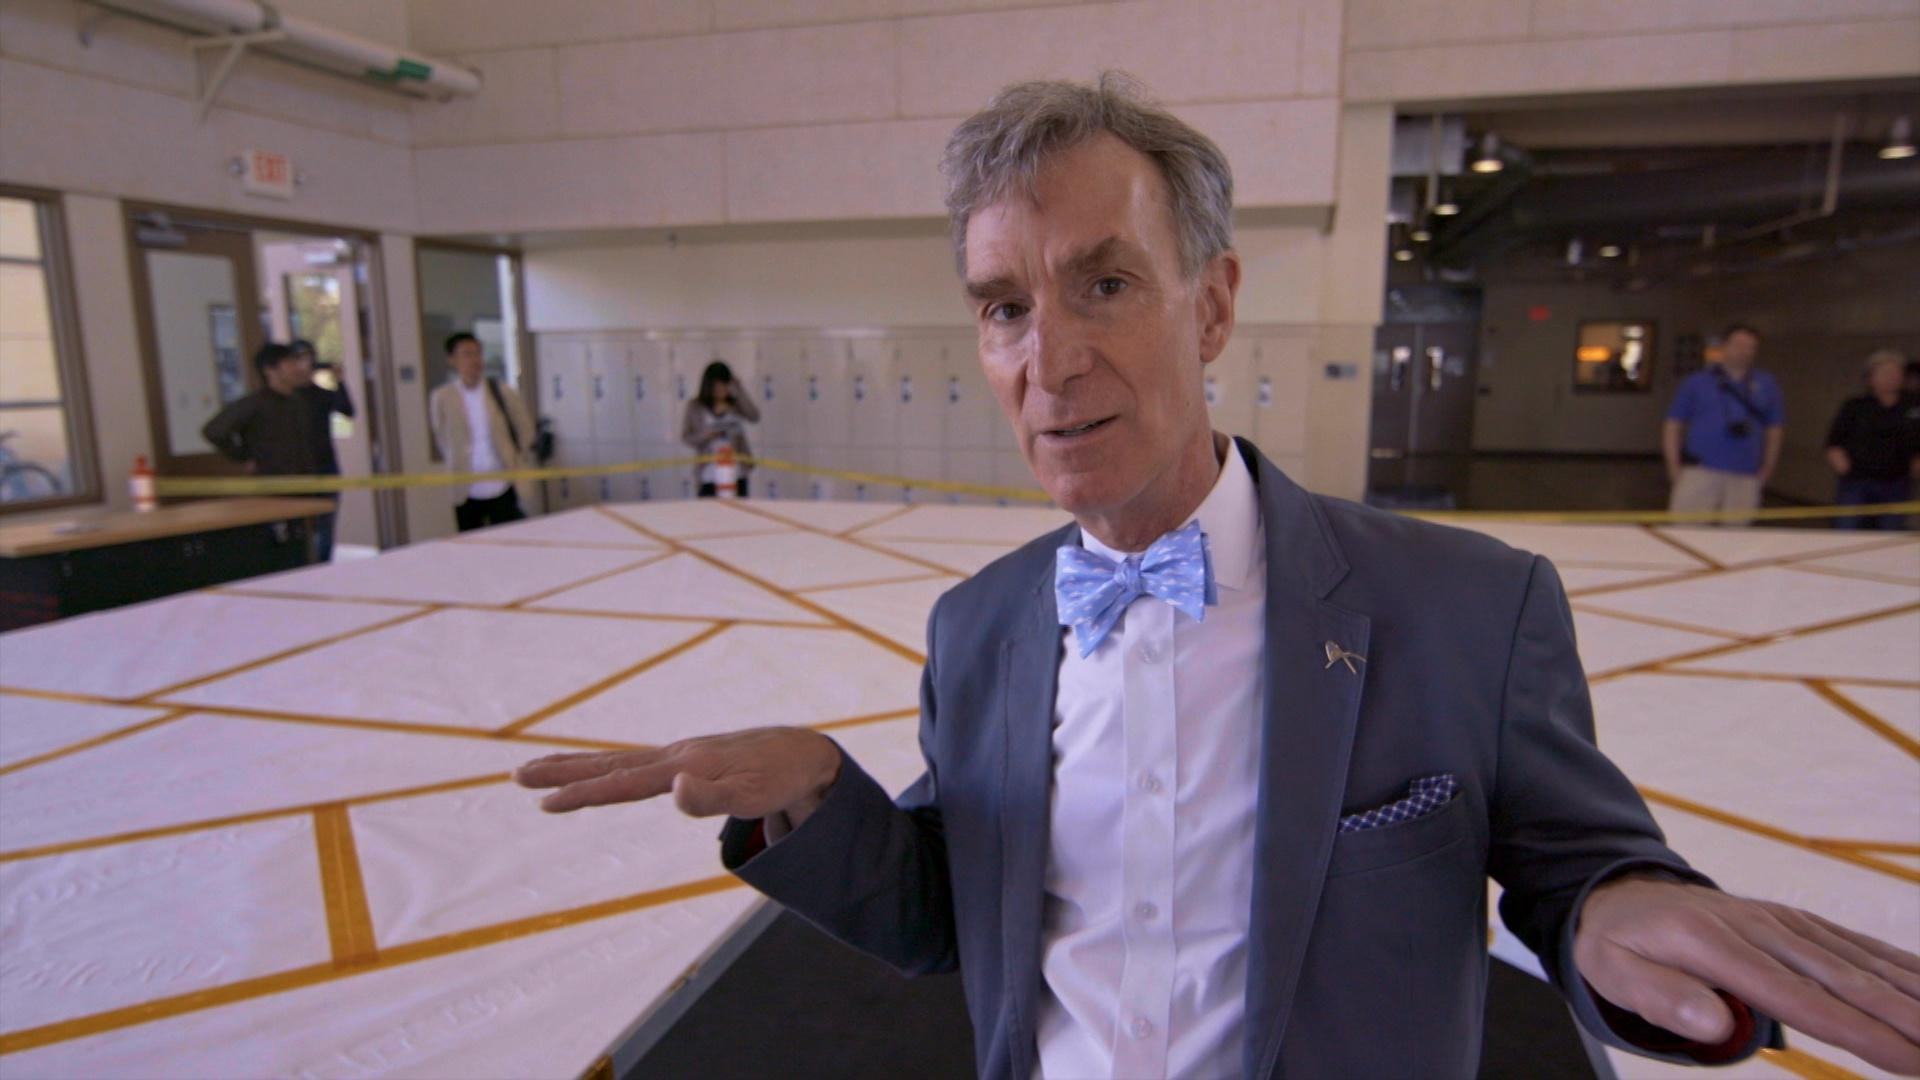 Bill Nye: Science Guy - The Test